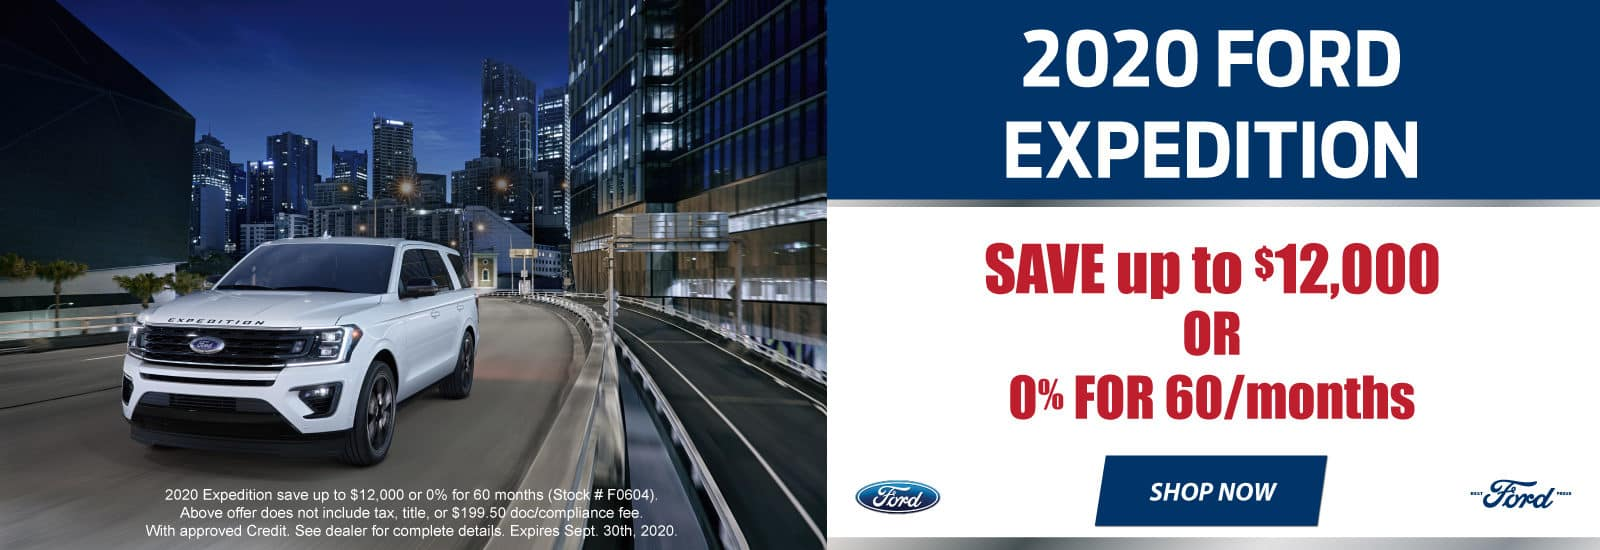 2020-Ford-Expedition-Web-Banner-1600×550